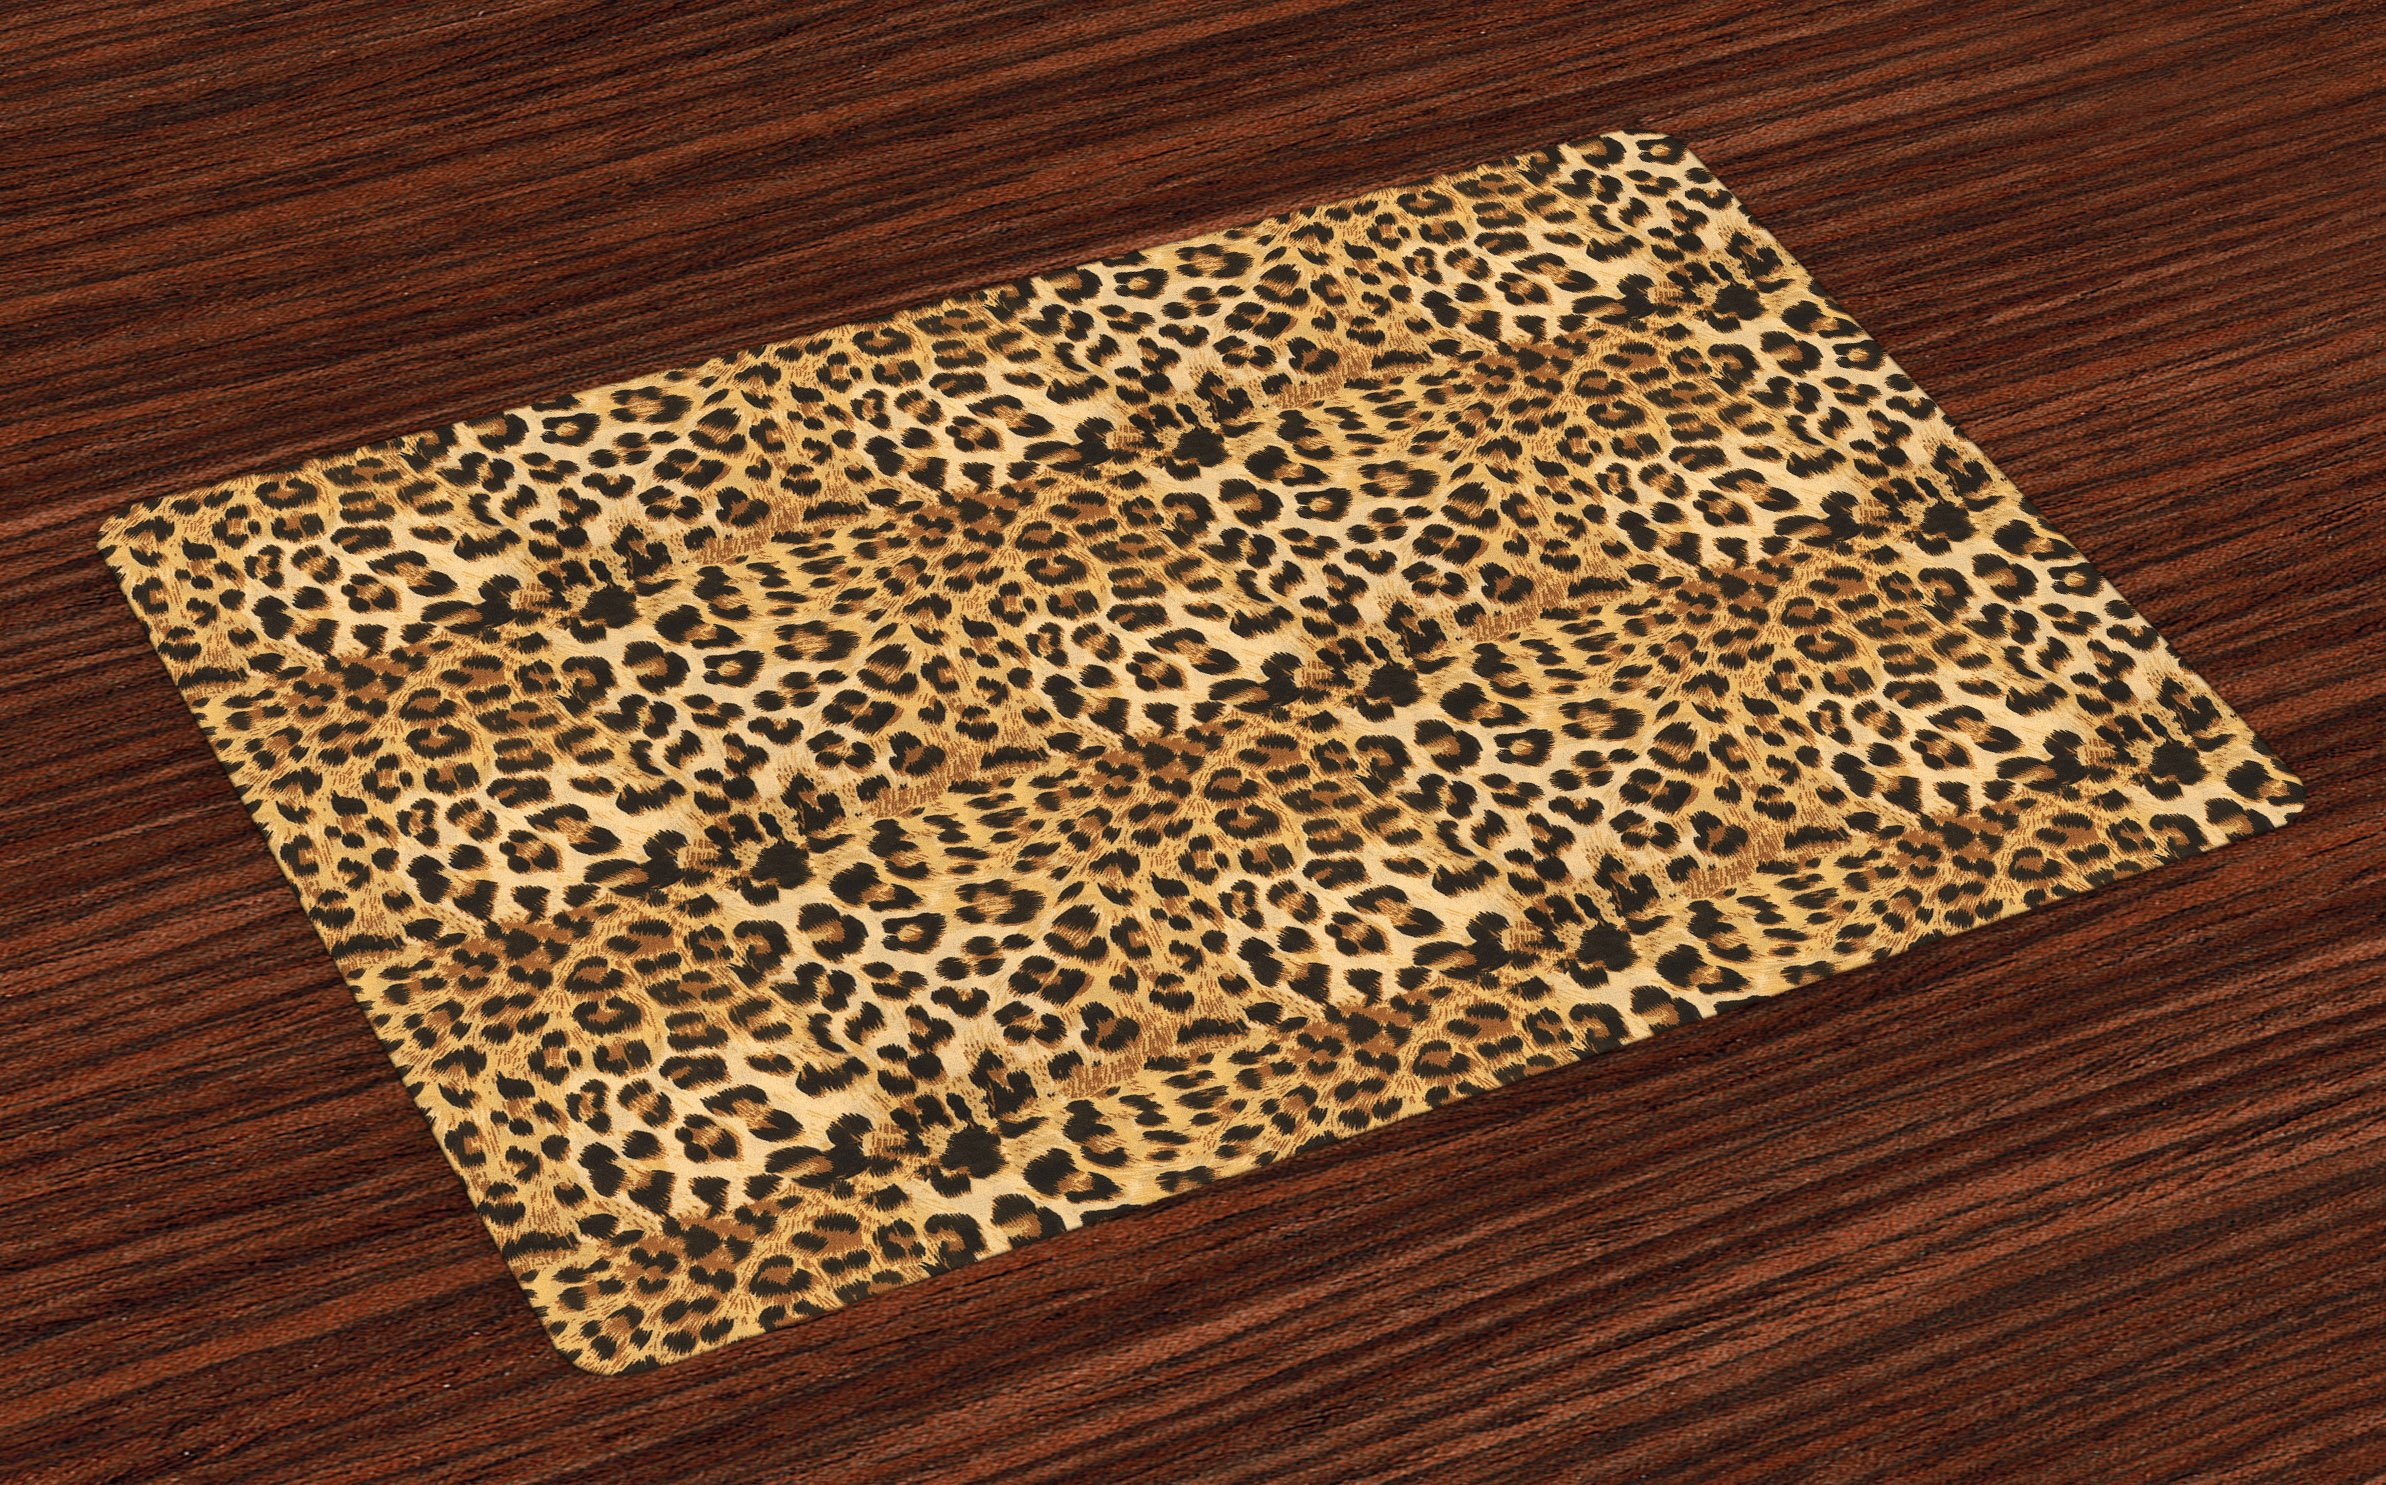 Ambesonne Brown Place Mats Set of 4, Leopard Print Animal Skin Digital Printed Wild African Safari Themed Spotted Pattern Art, Washable Fabric Placemats for Dining Room Kitchen Table Decor, Brown